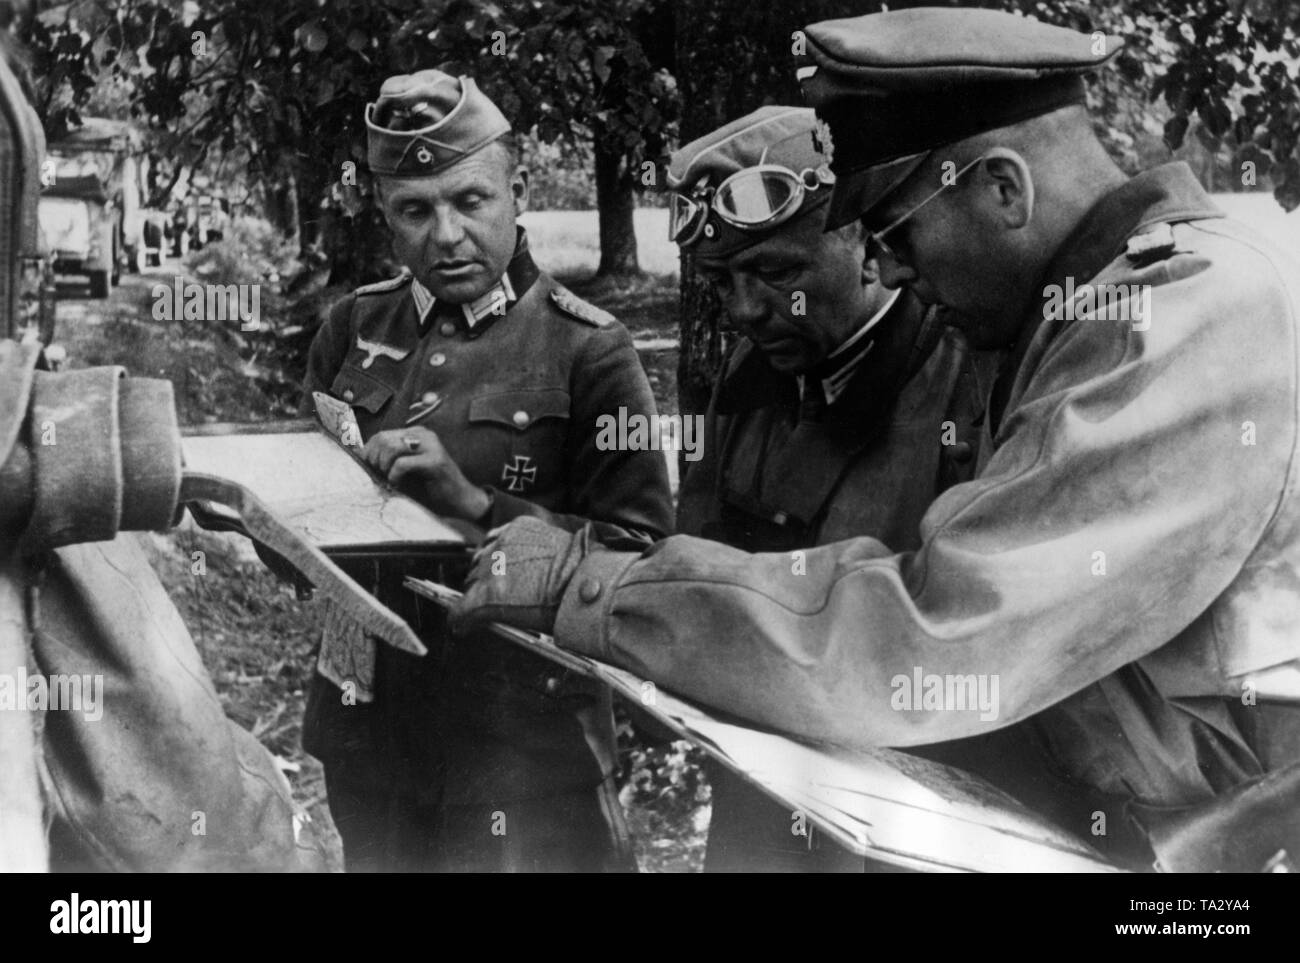 Briefing of Wehrmacht officers of Army Group North near Karsava at the river Ludza in today's Latvia. Photo: war correspondent Koch. Stock Photo